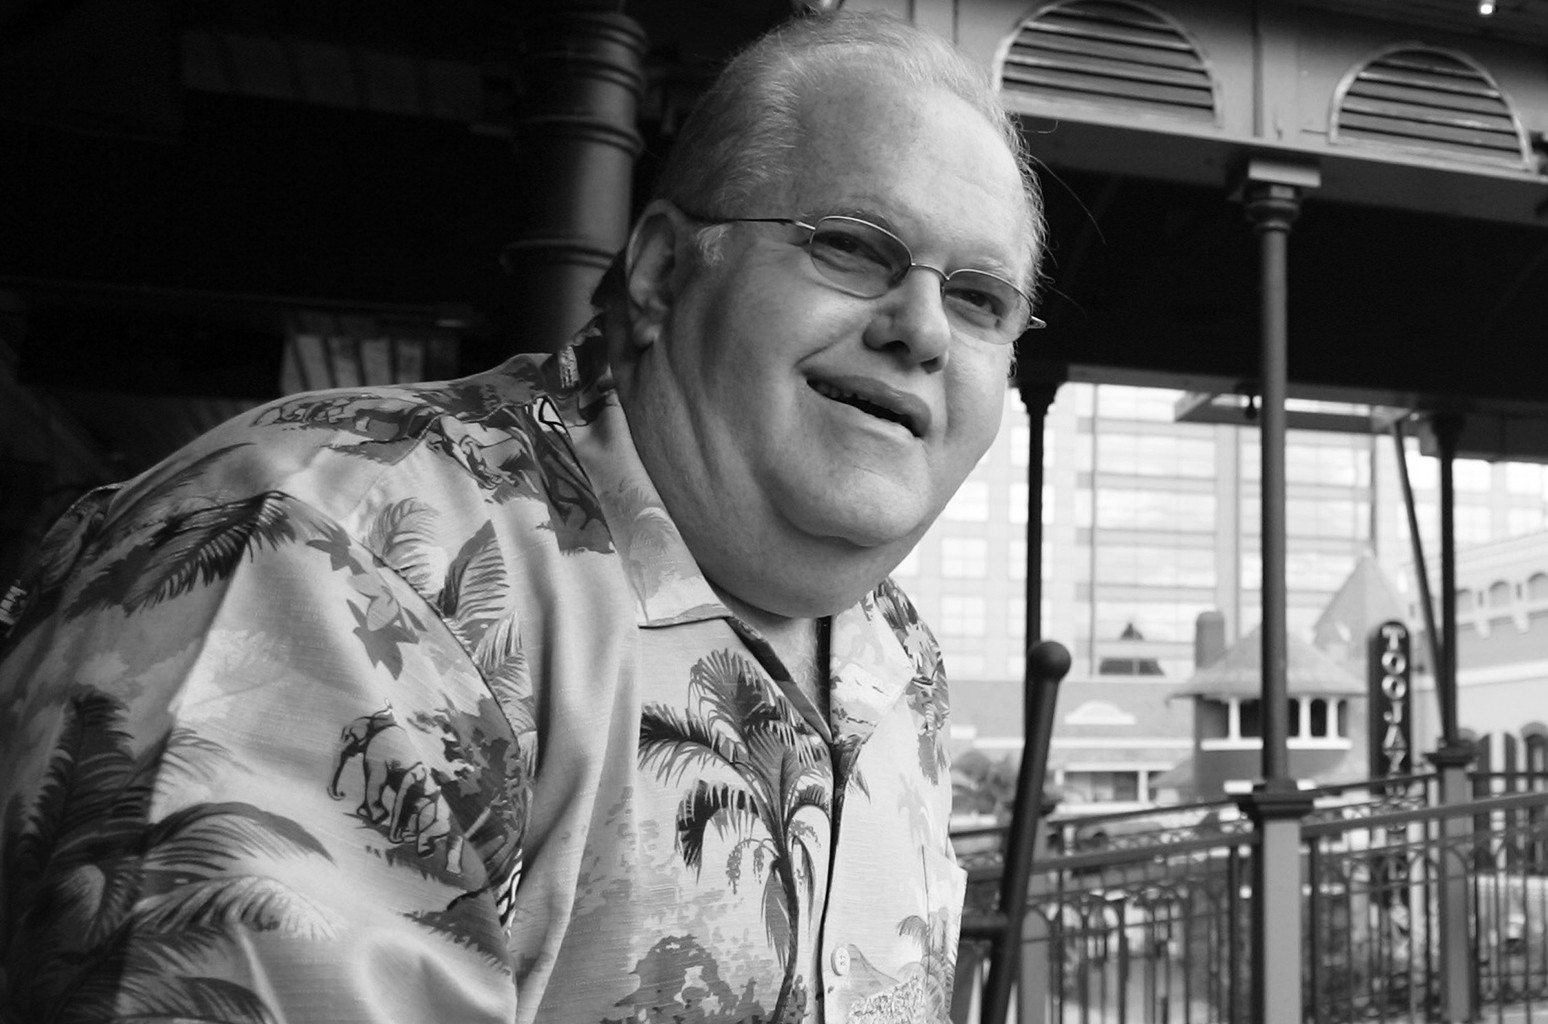 Lou Pearlman photographed in 2006